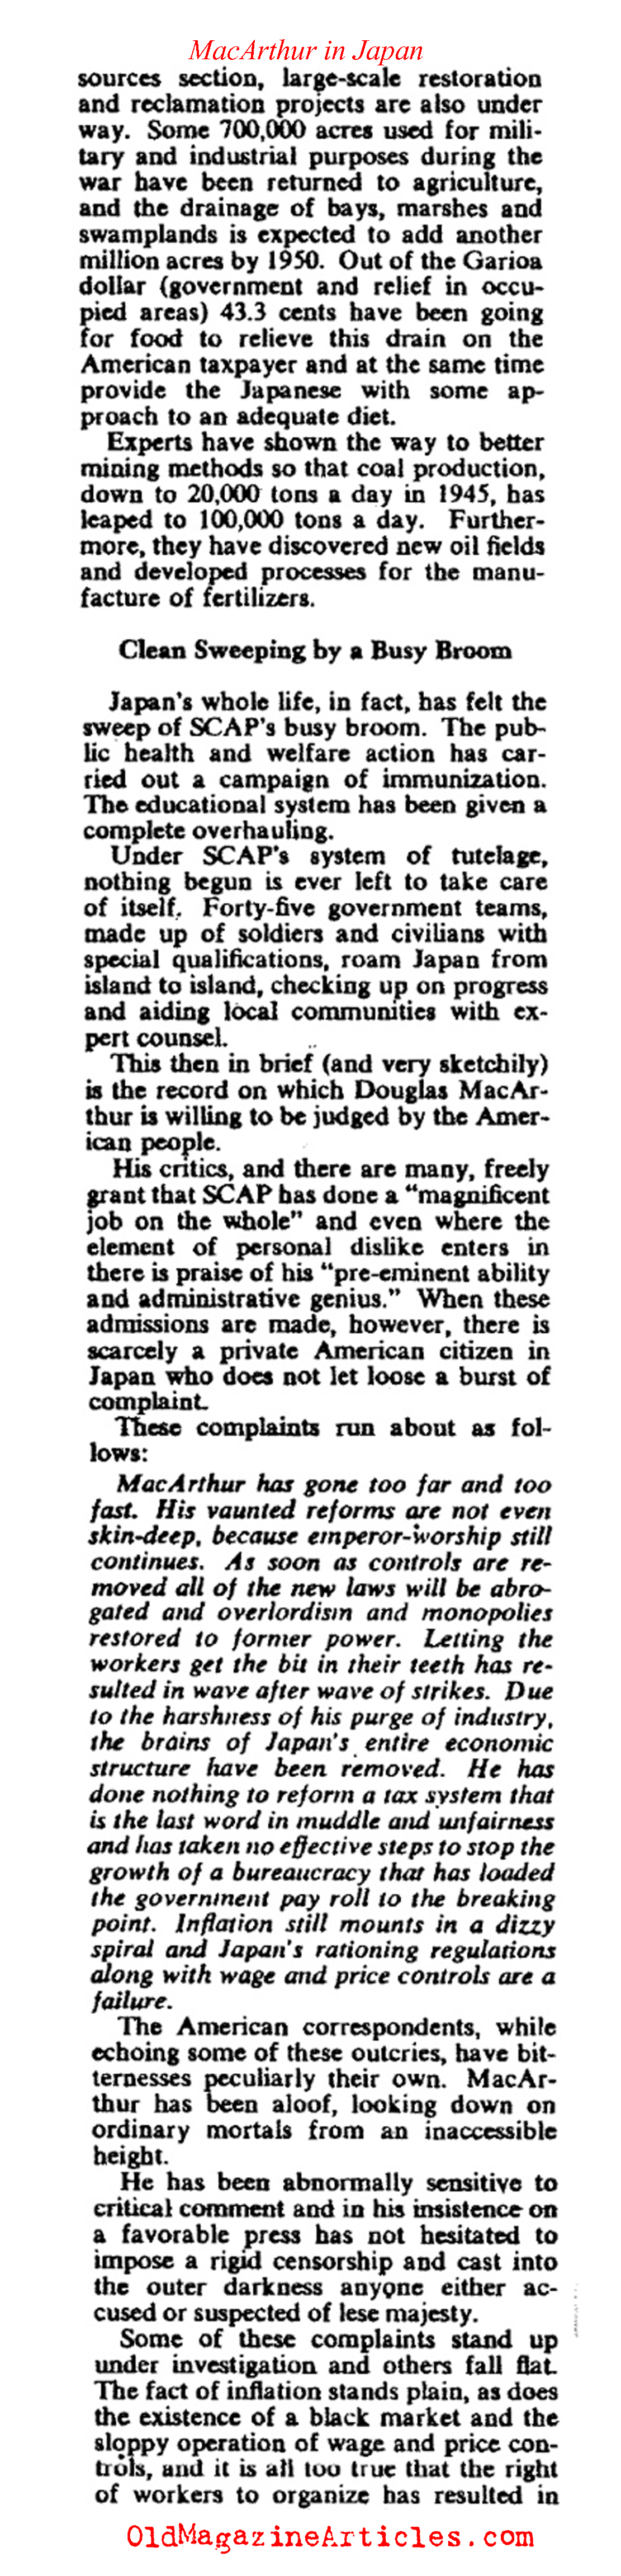 The Stewardship of General MacArthur (Collier's Magazine, 1948)